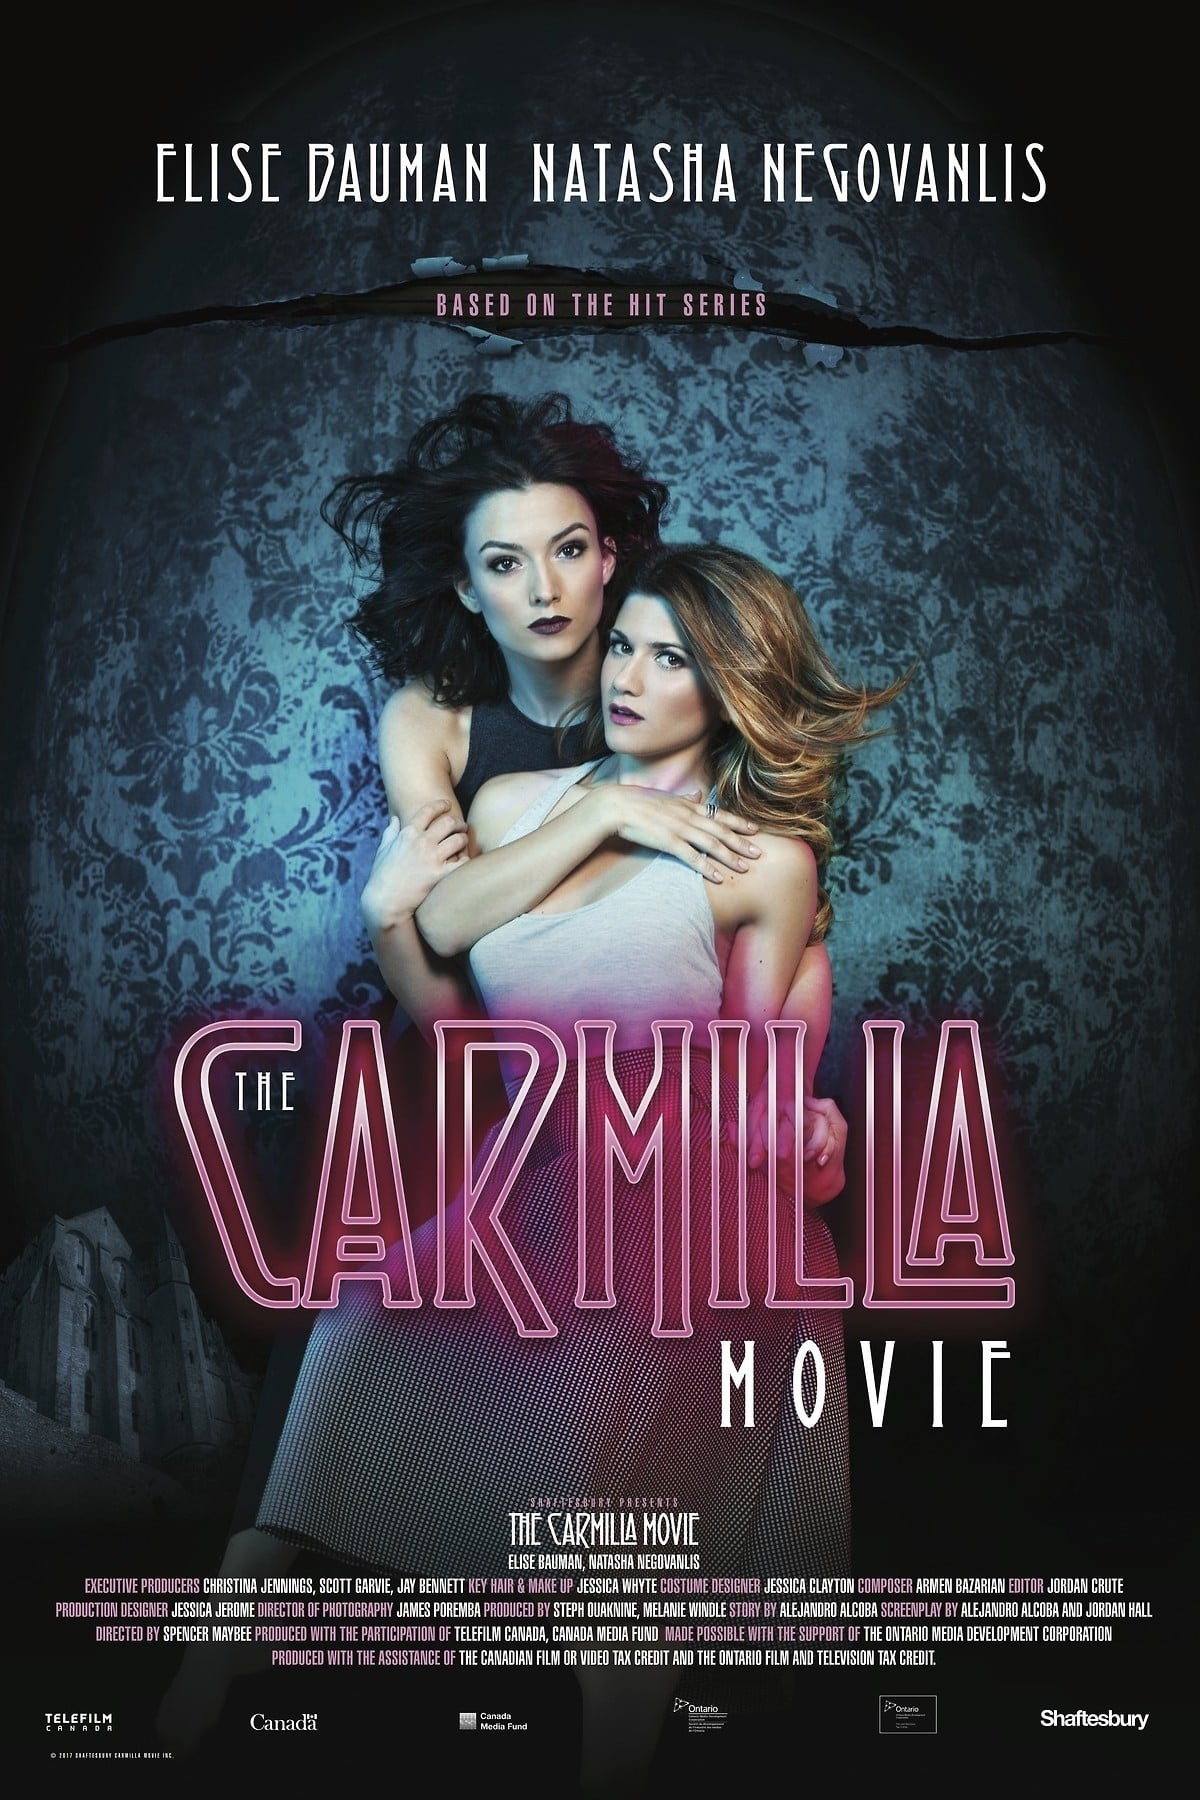 image for The Carmilla Movie